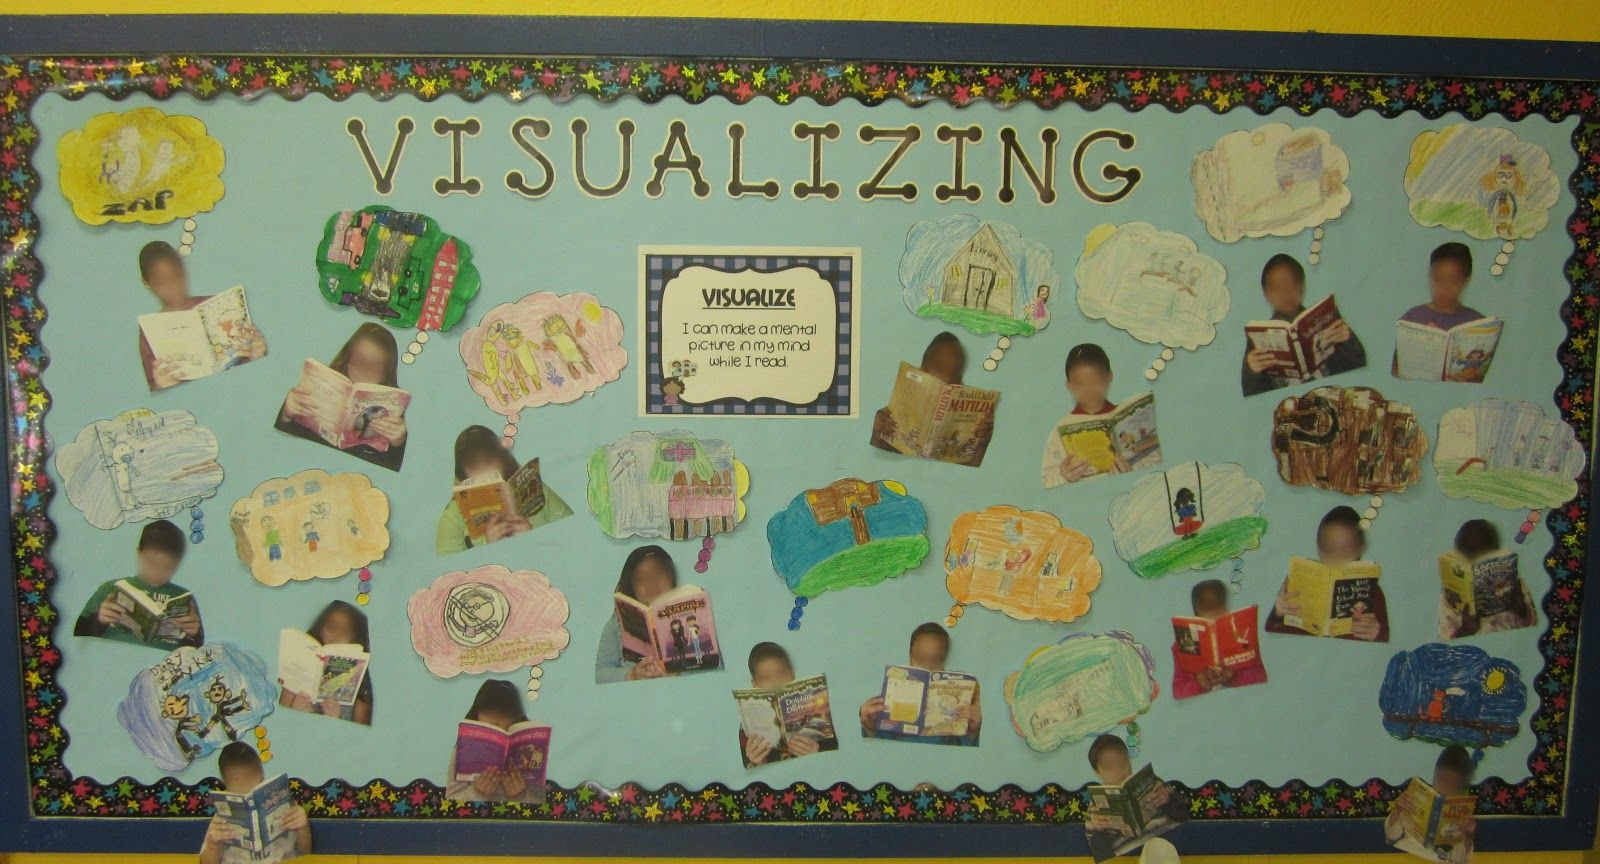 Visualizing Bulletin Board